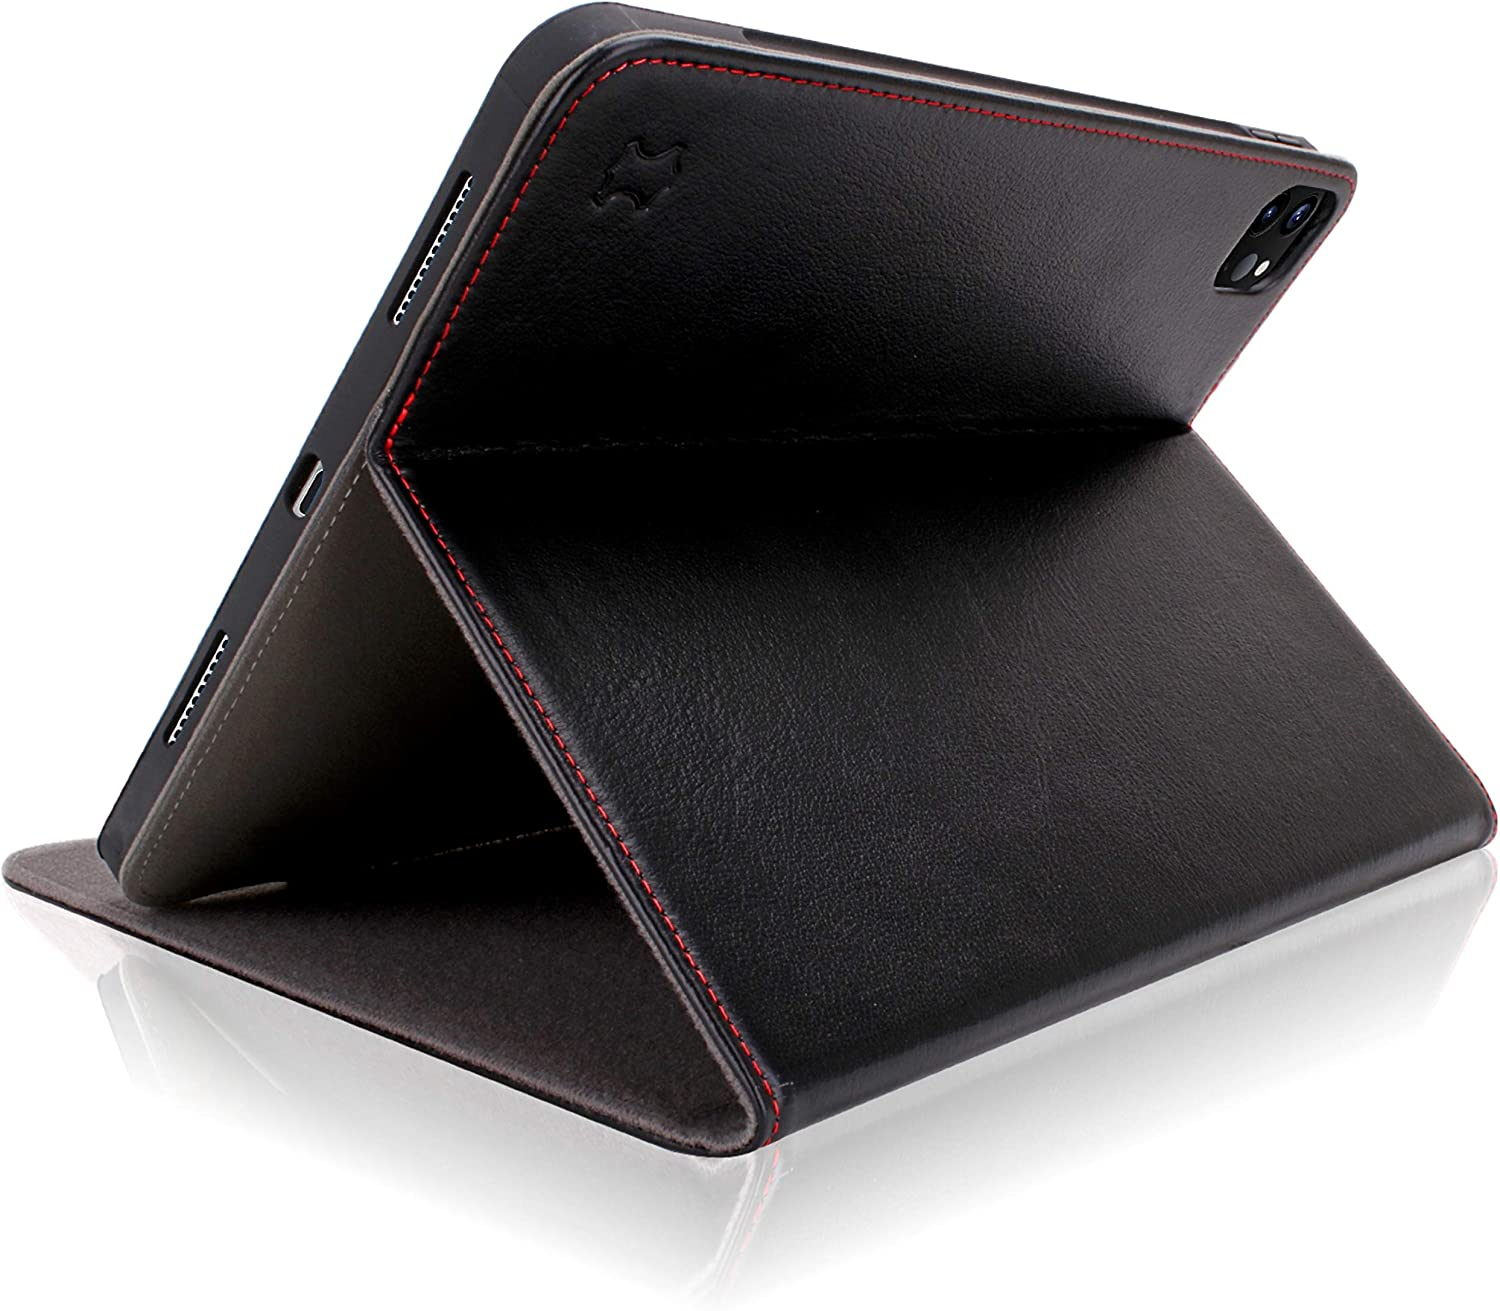 Cuvr Genuine Leather Case for New iPad Pro 12.9 2020 (4th Generation), Cover with Secure Any-Angle Stand and Safe Apple Pencil Holder for iPad Pro 12.9 inch 2020